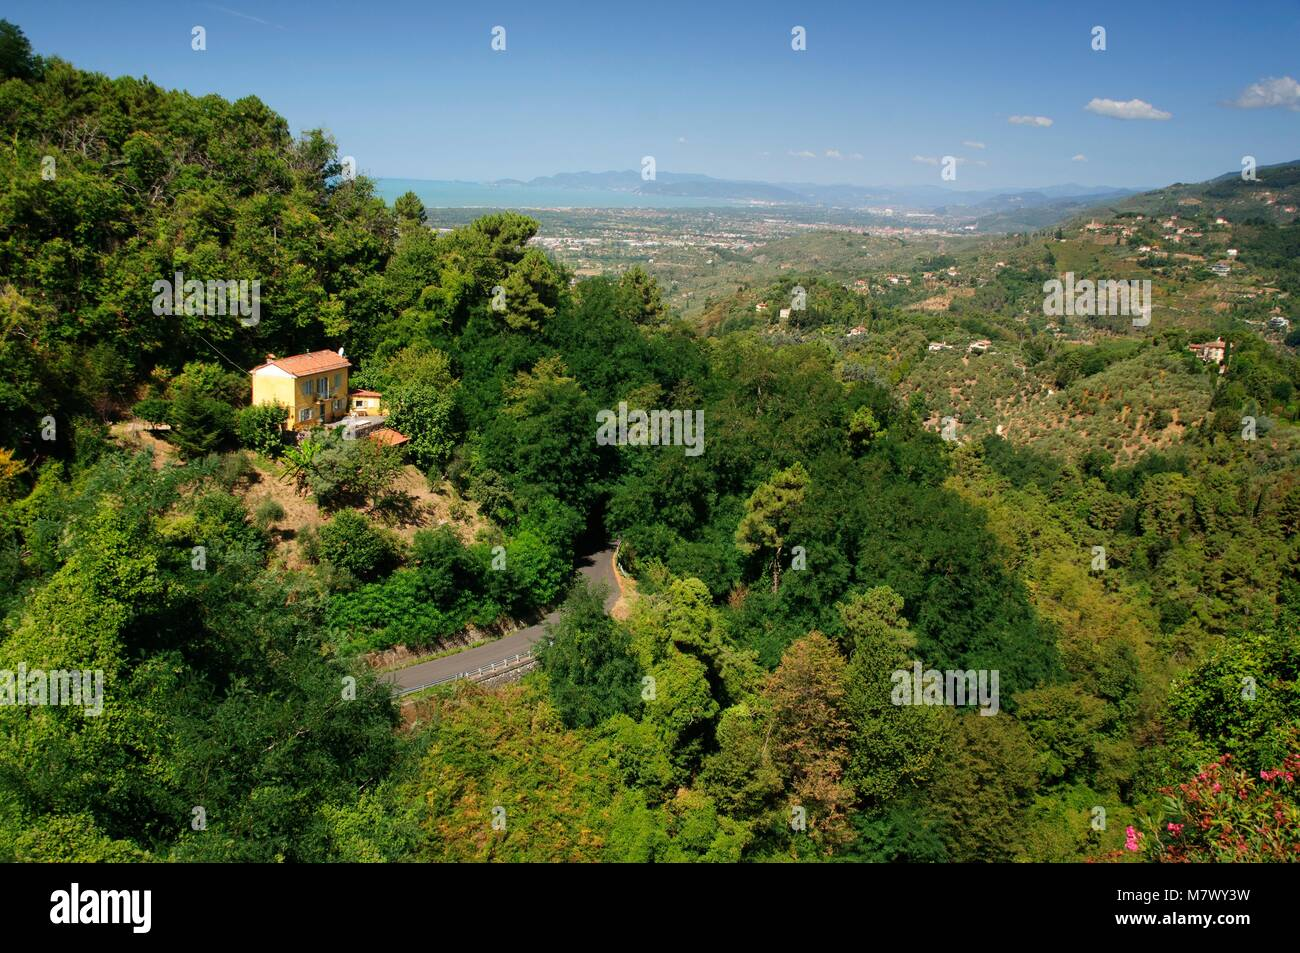 Scenic view from a hill in Tuscany - Stock Image